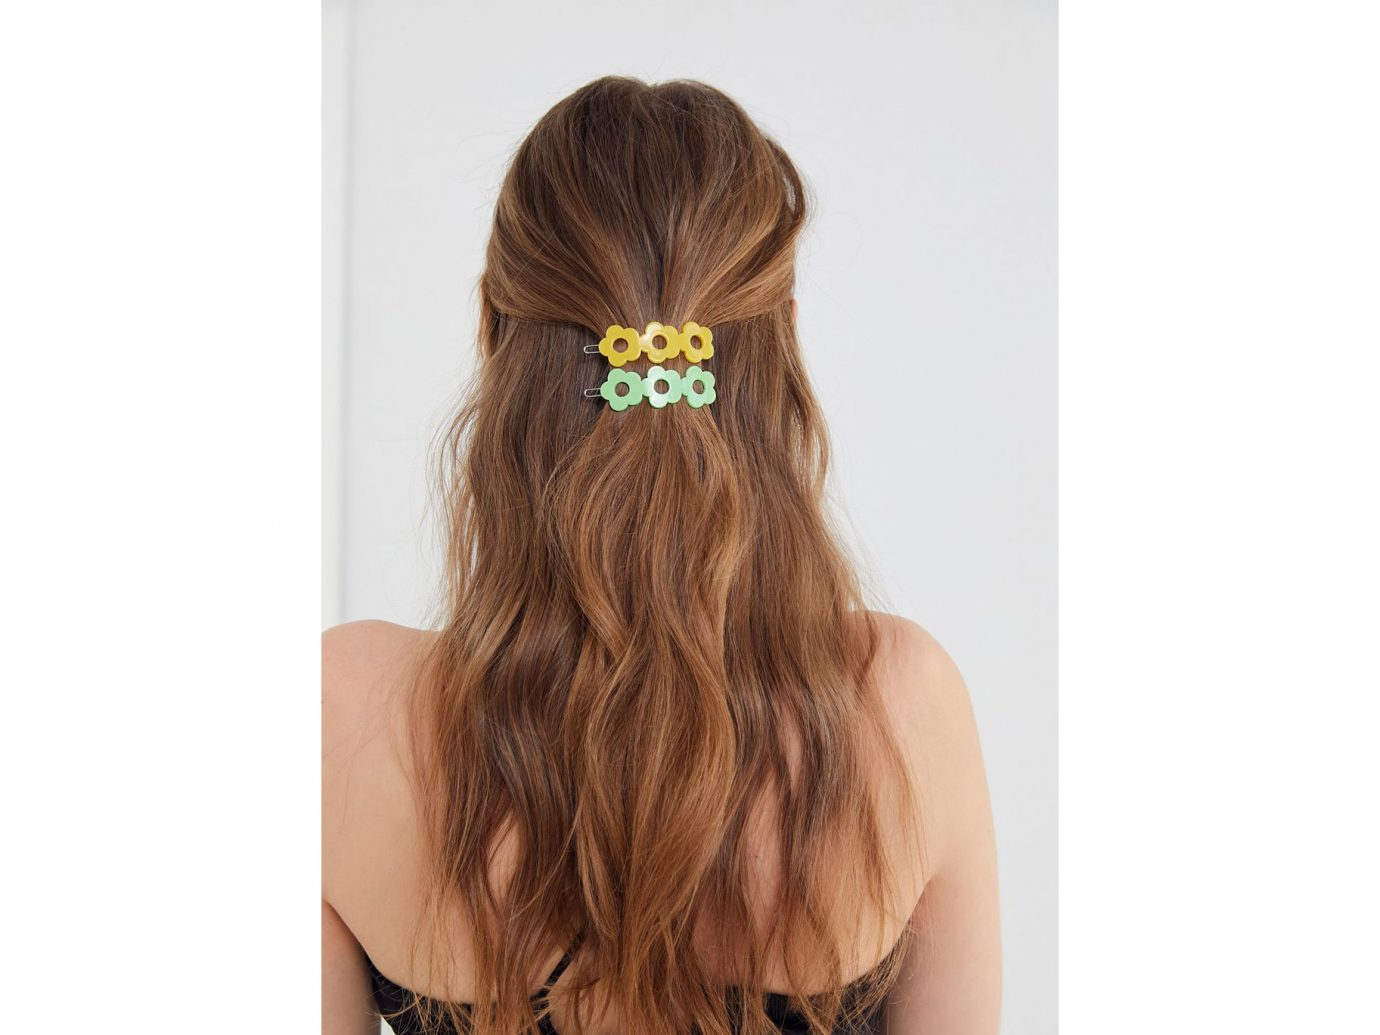 Urban outfitters Daisy Hair Clip Set